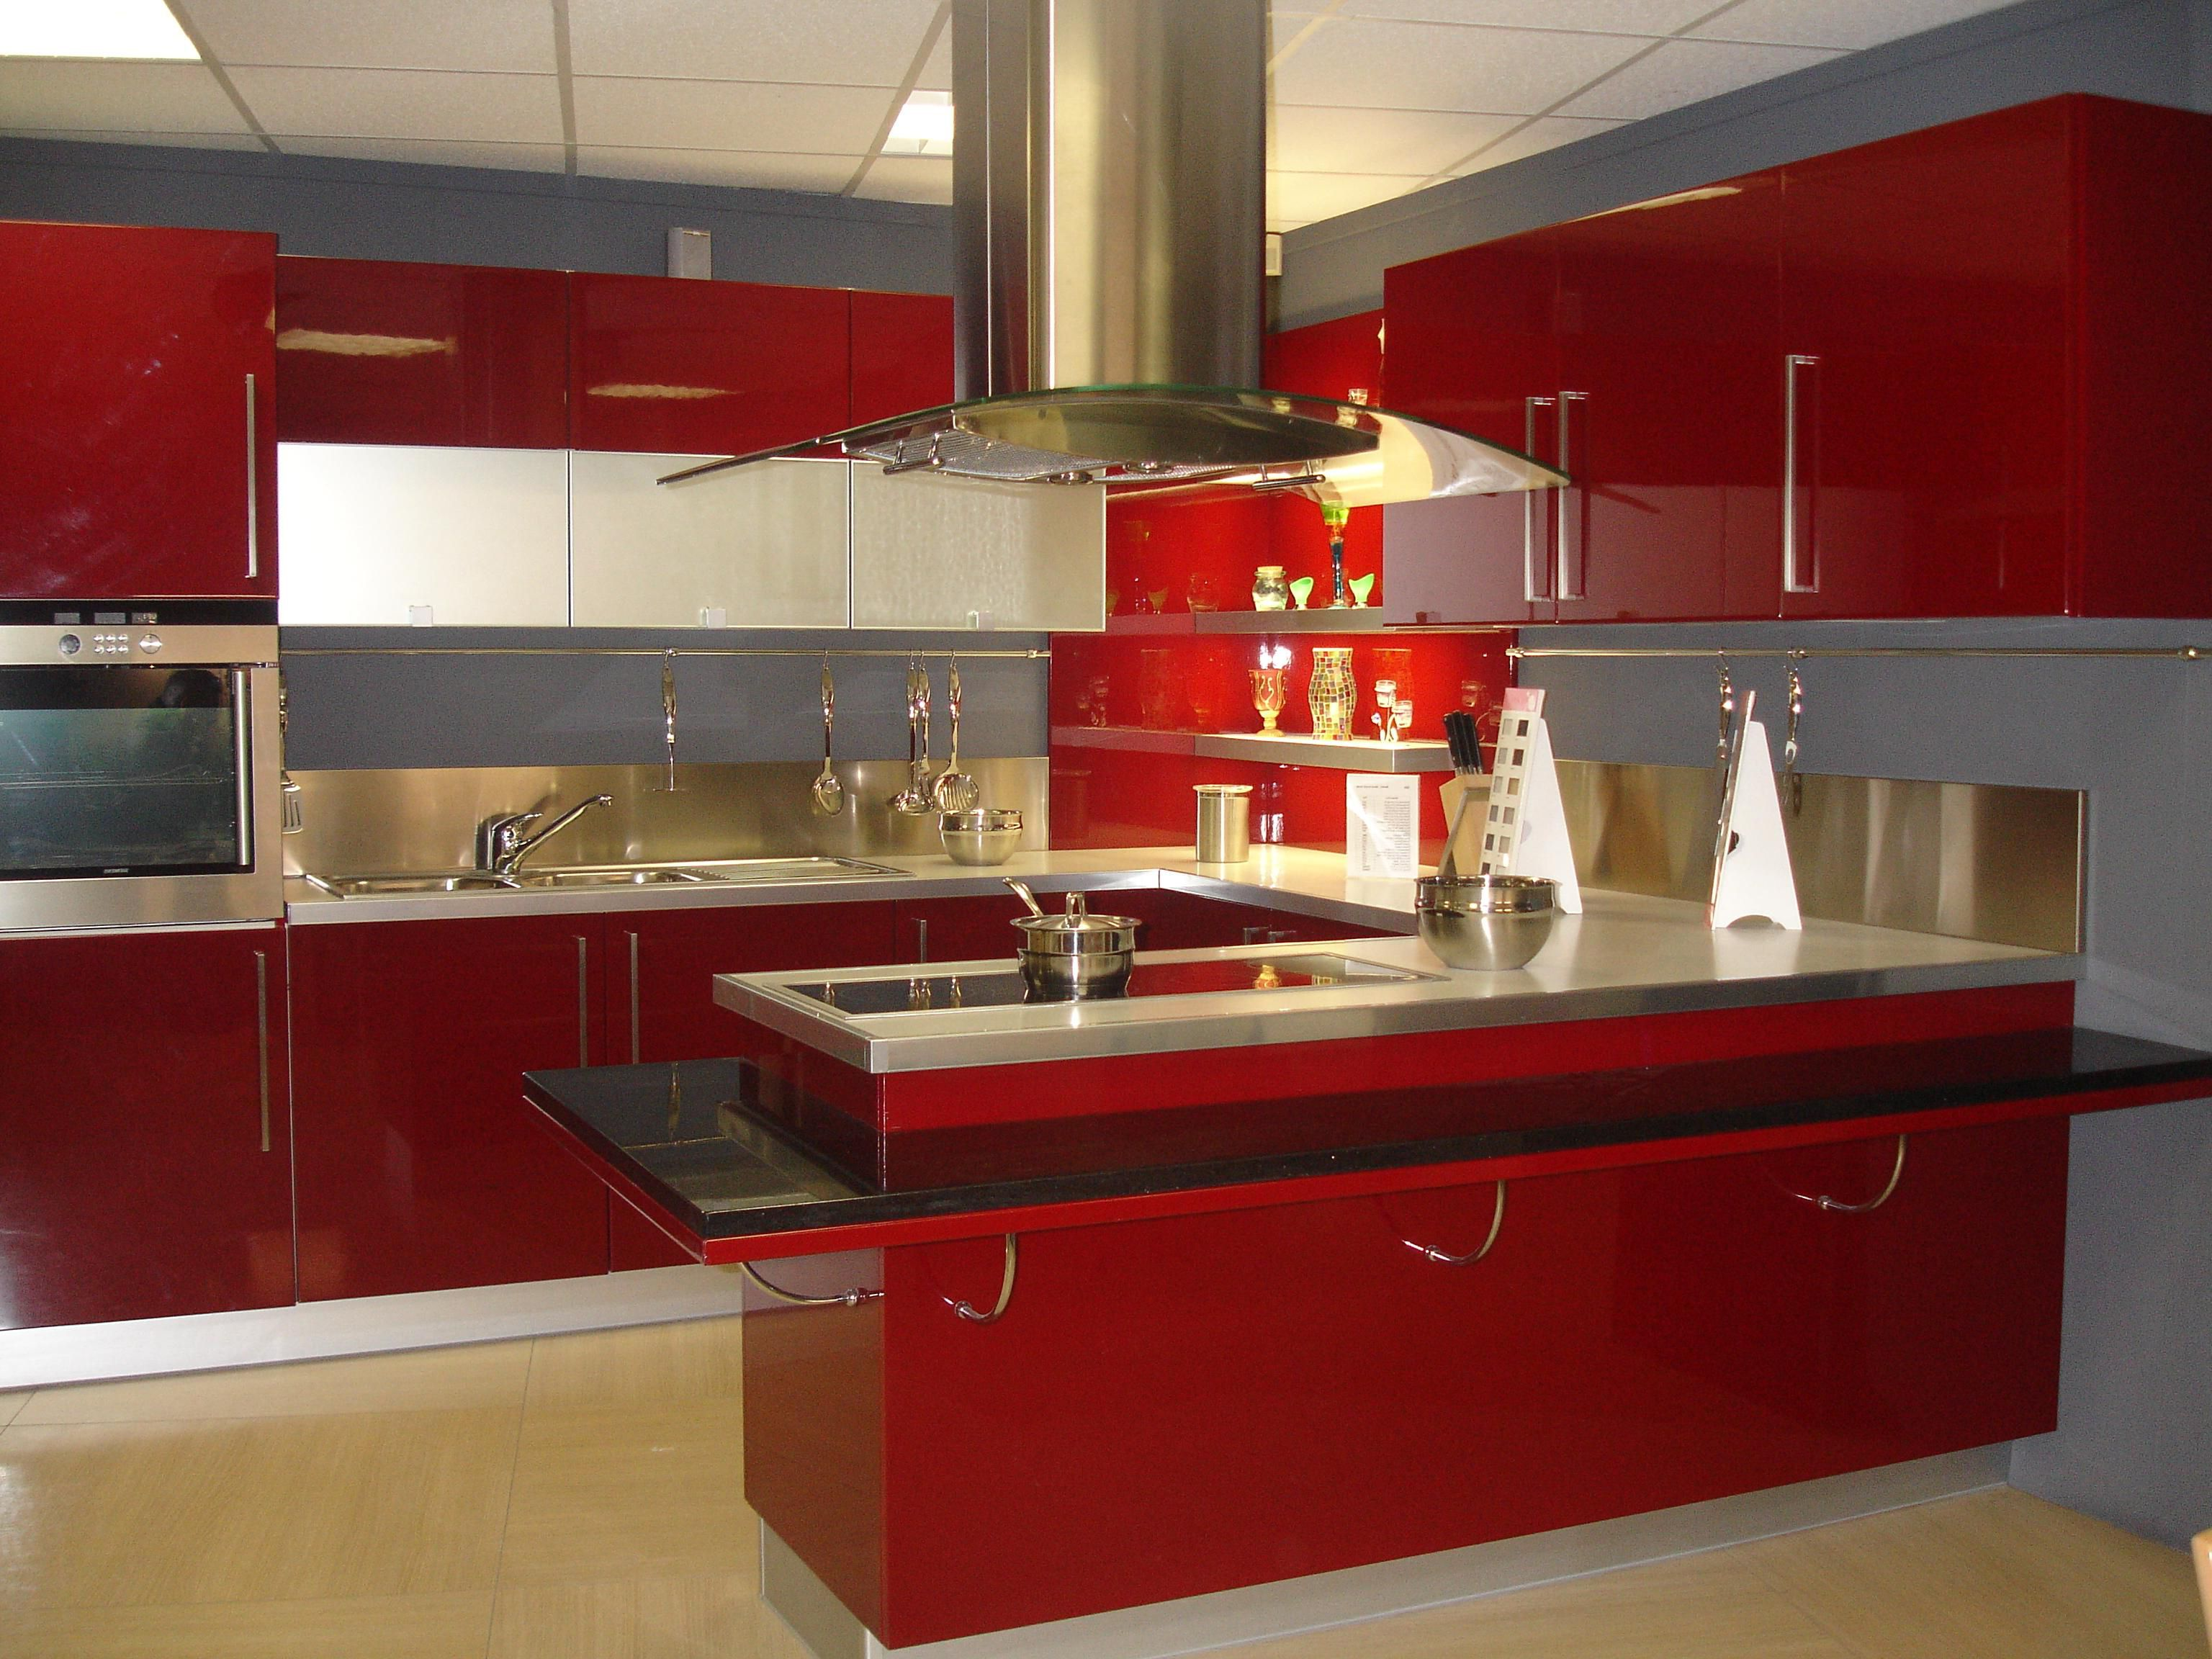 Cuisine Rouge Cuisine Pinterest Kitchens Red Kitchen And